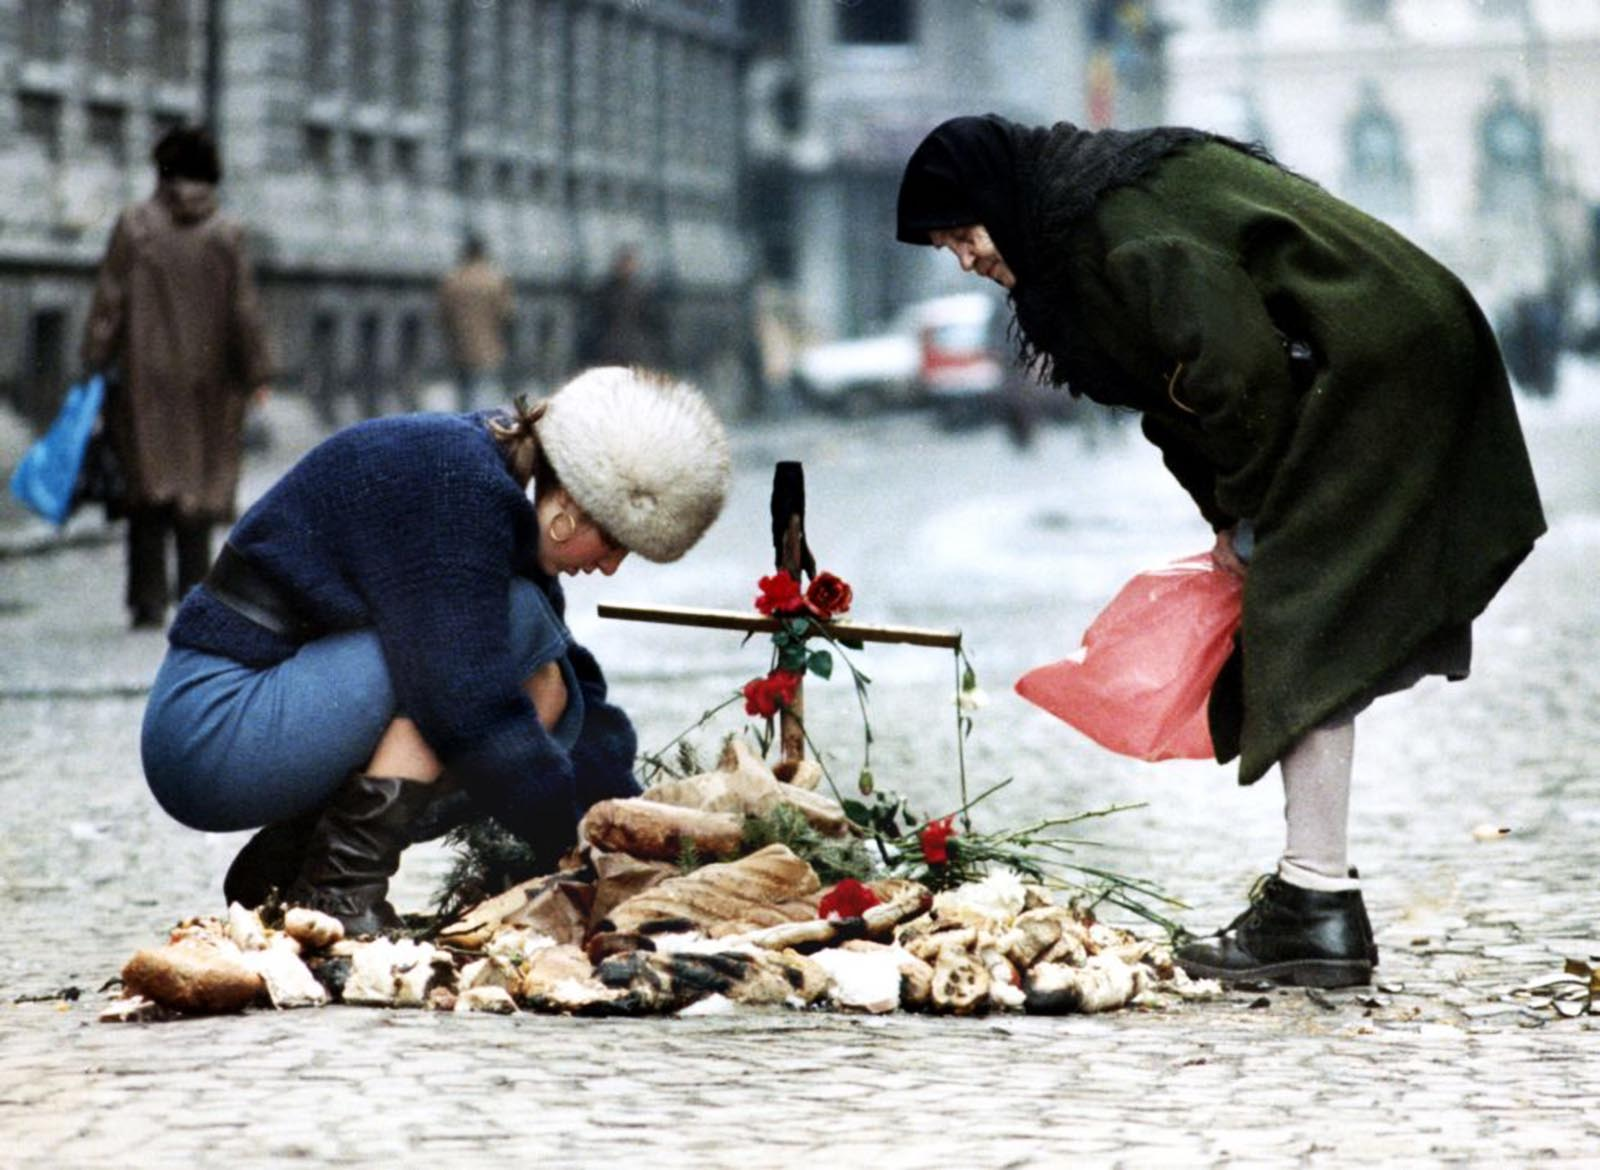 A student tends a small shrine in the middle of the main street outside Bucharest university watched by an old woman.